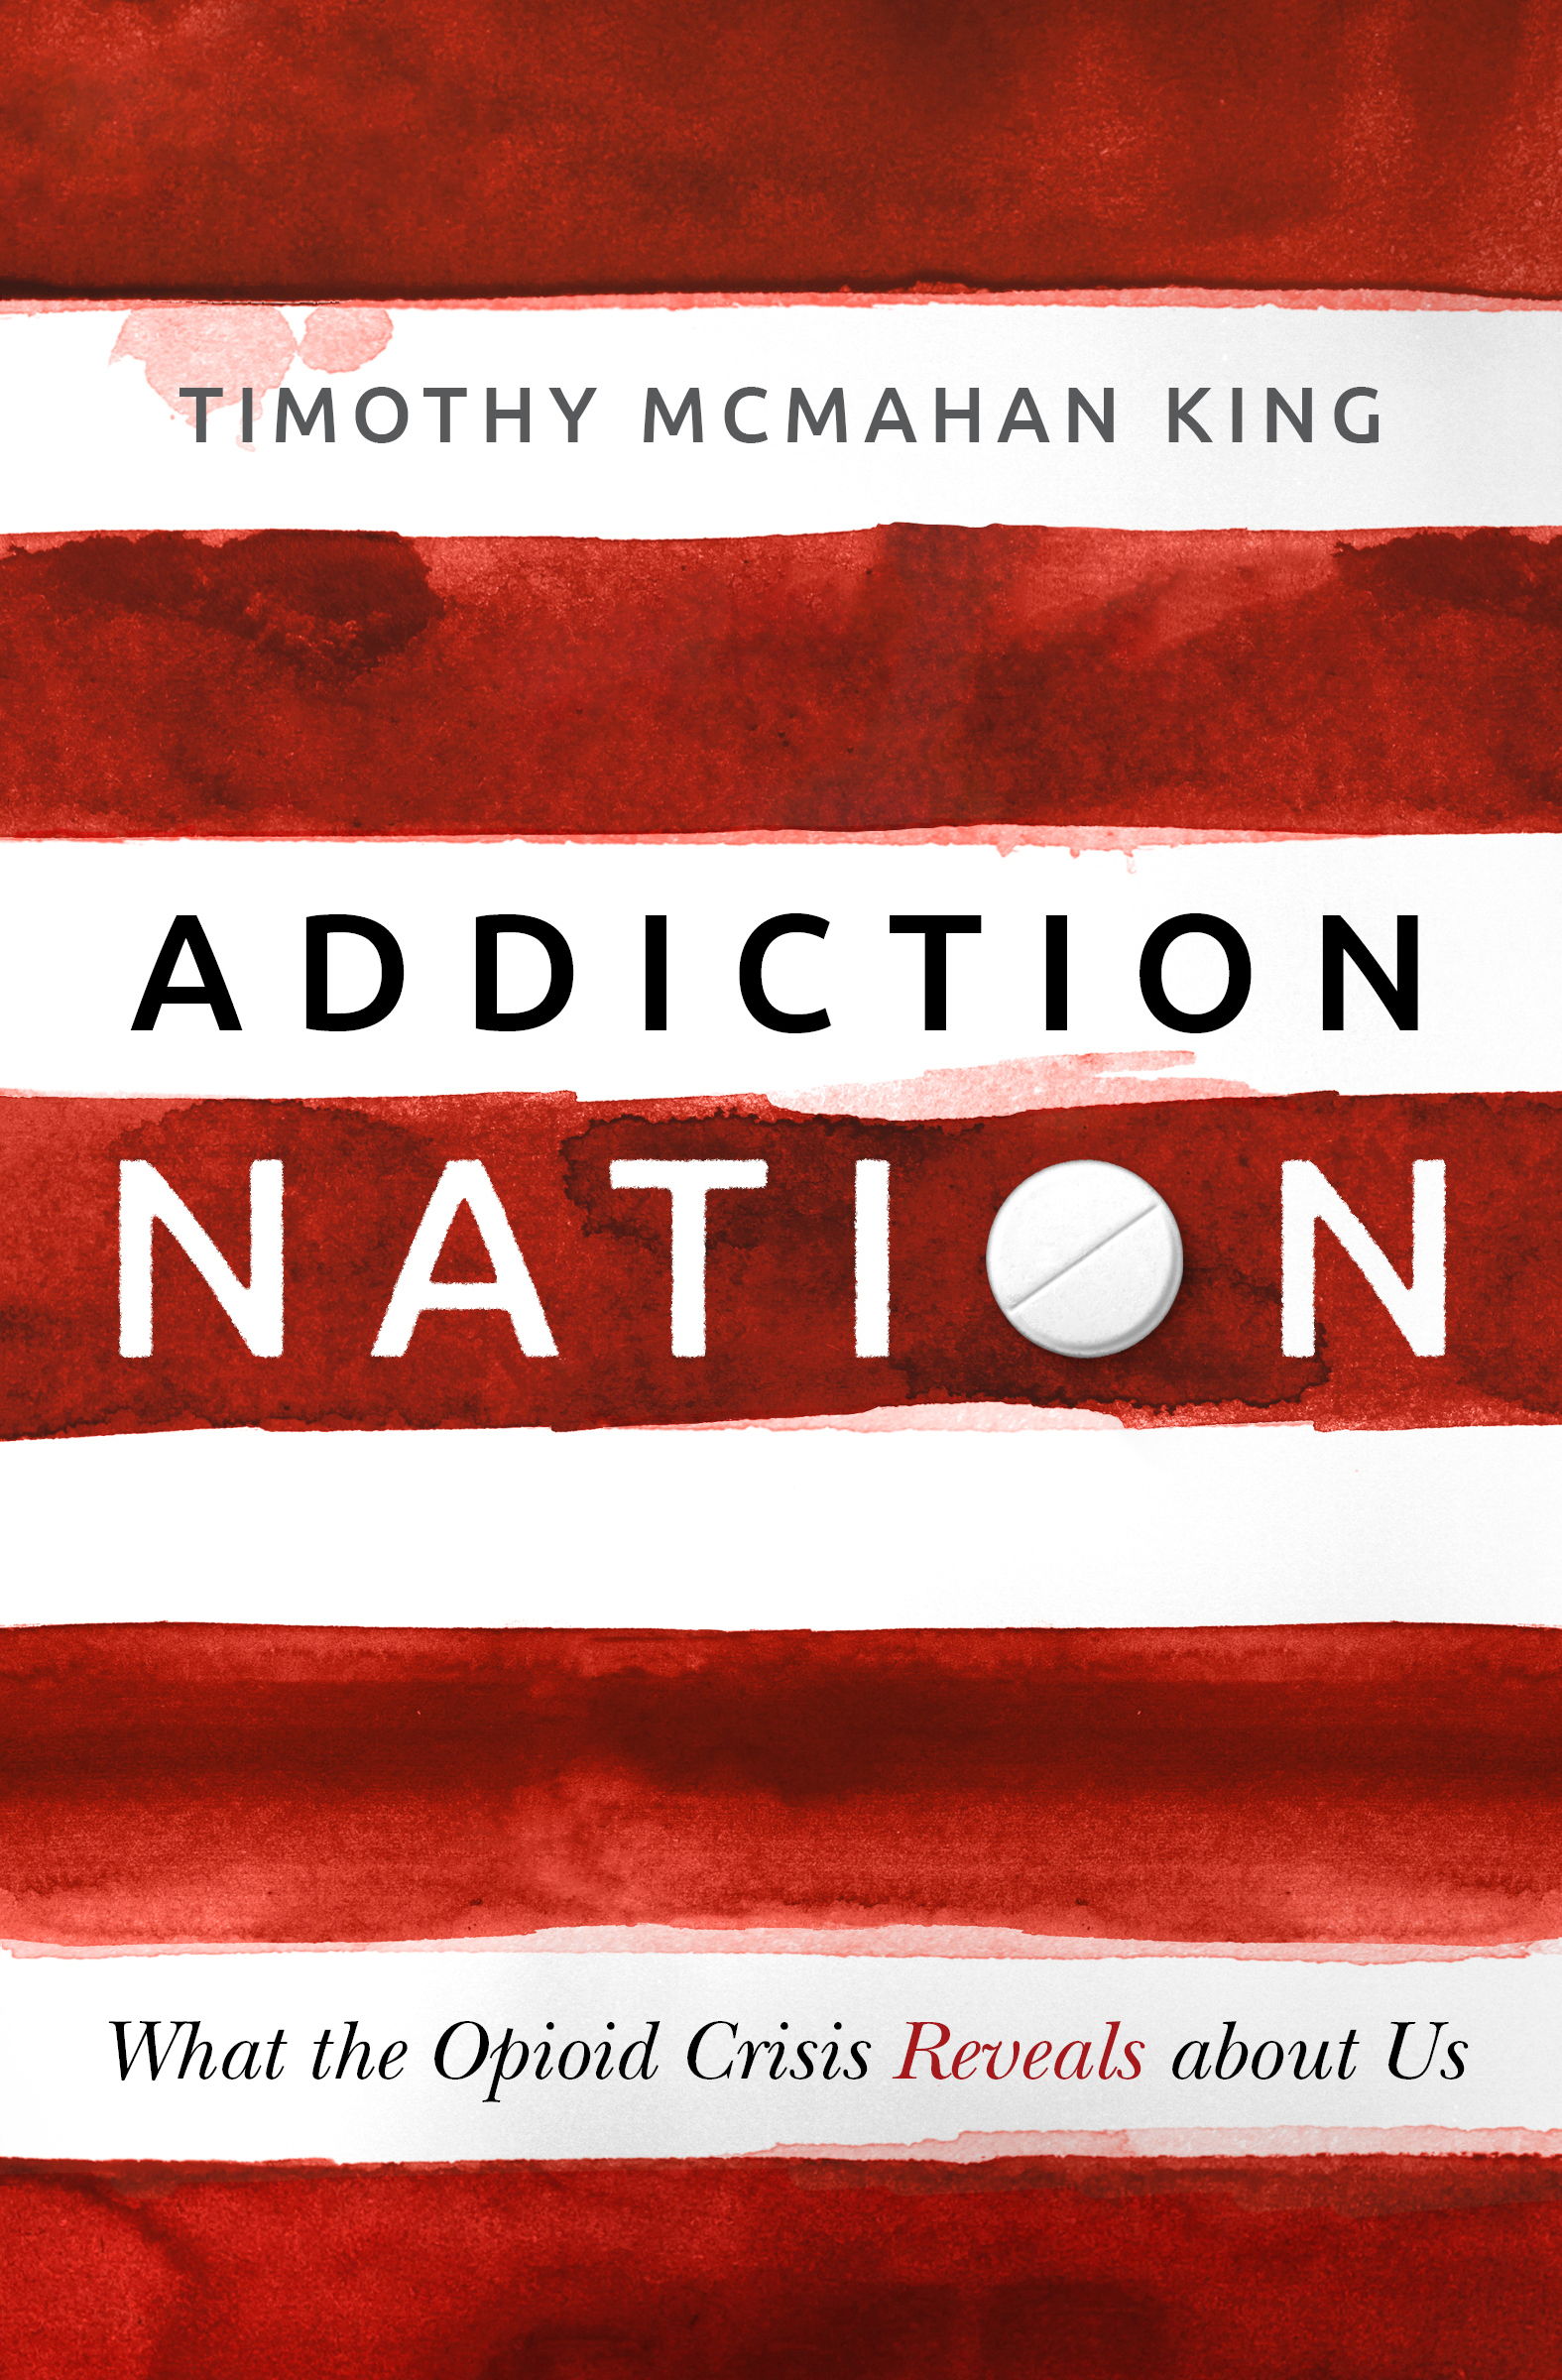 Westlake Legal Group Addiction-Nation Timothy McMahan King: I've struggled with an opioid addiction – To find a solution, we must break the silence Timothy McMahan King fox-news/topic/opioid-crisis fox-news/opinion fox-news/health/mental-health/drug-and-substance-abuse fox-news/health/mental-health/addiction fox news fnc/opinion fnc c6ddc7b3-4ea0-5031-acc5-594e8c4803eb article